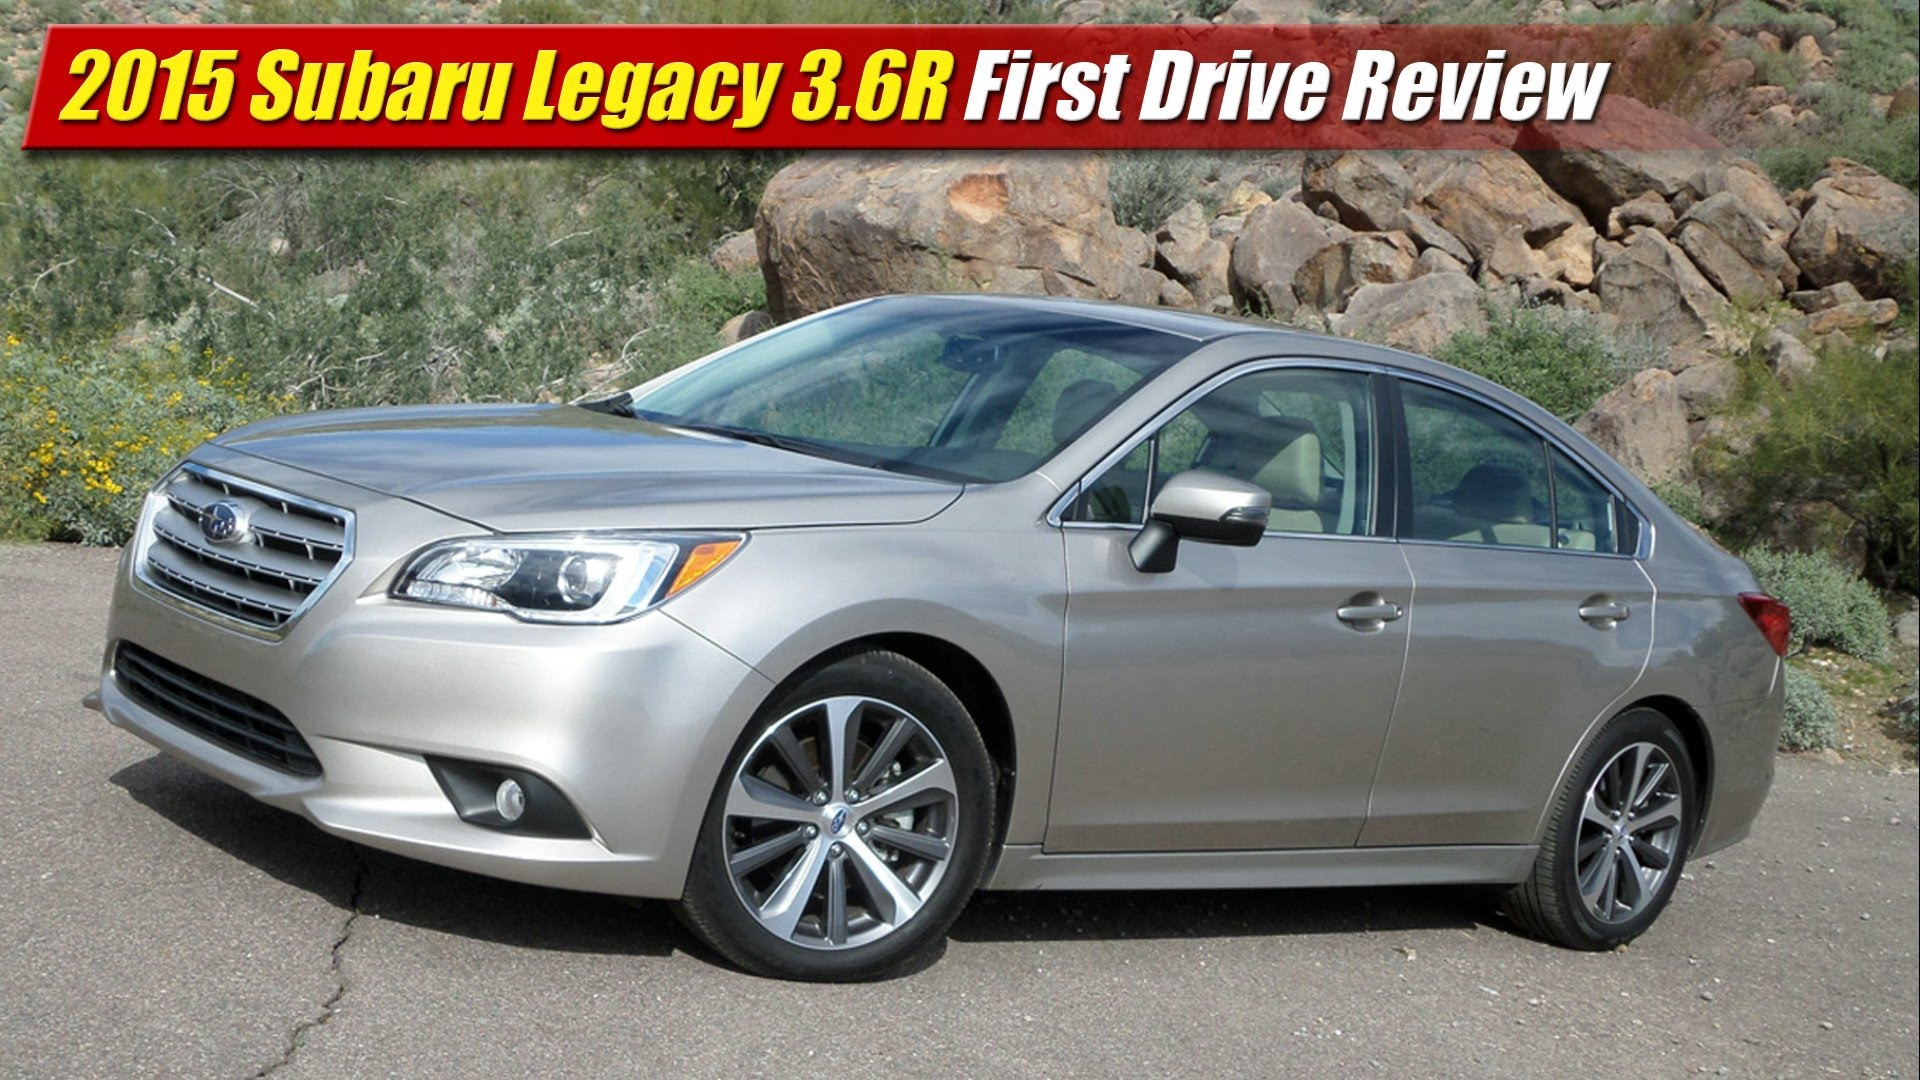 Subaru Legacy 3.6 R >> 2015 Subaru Legacy 3.6R First Drive Review - TestDriven.TV